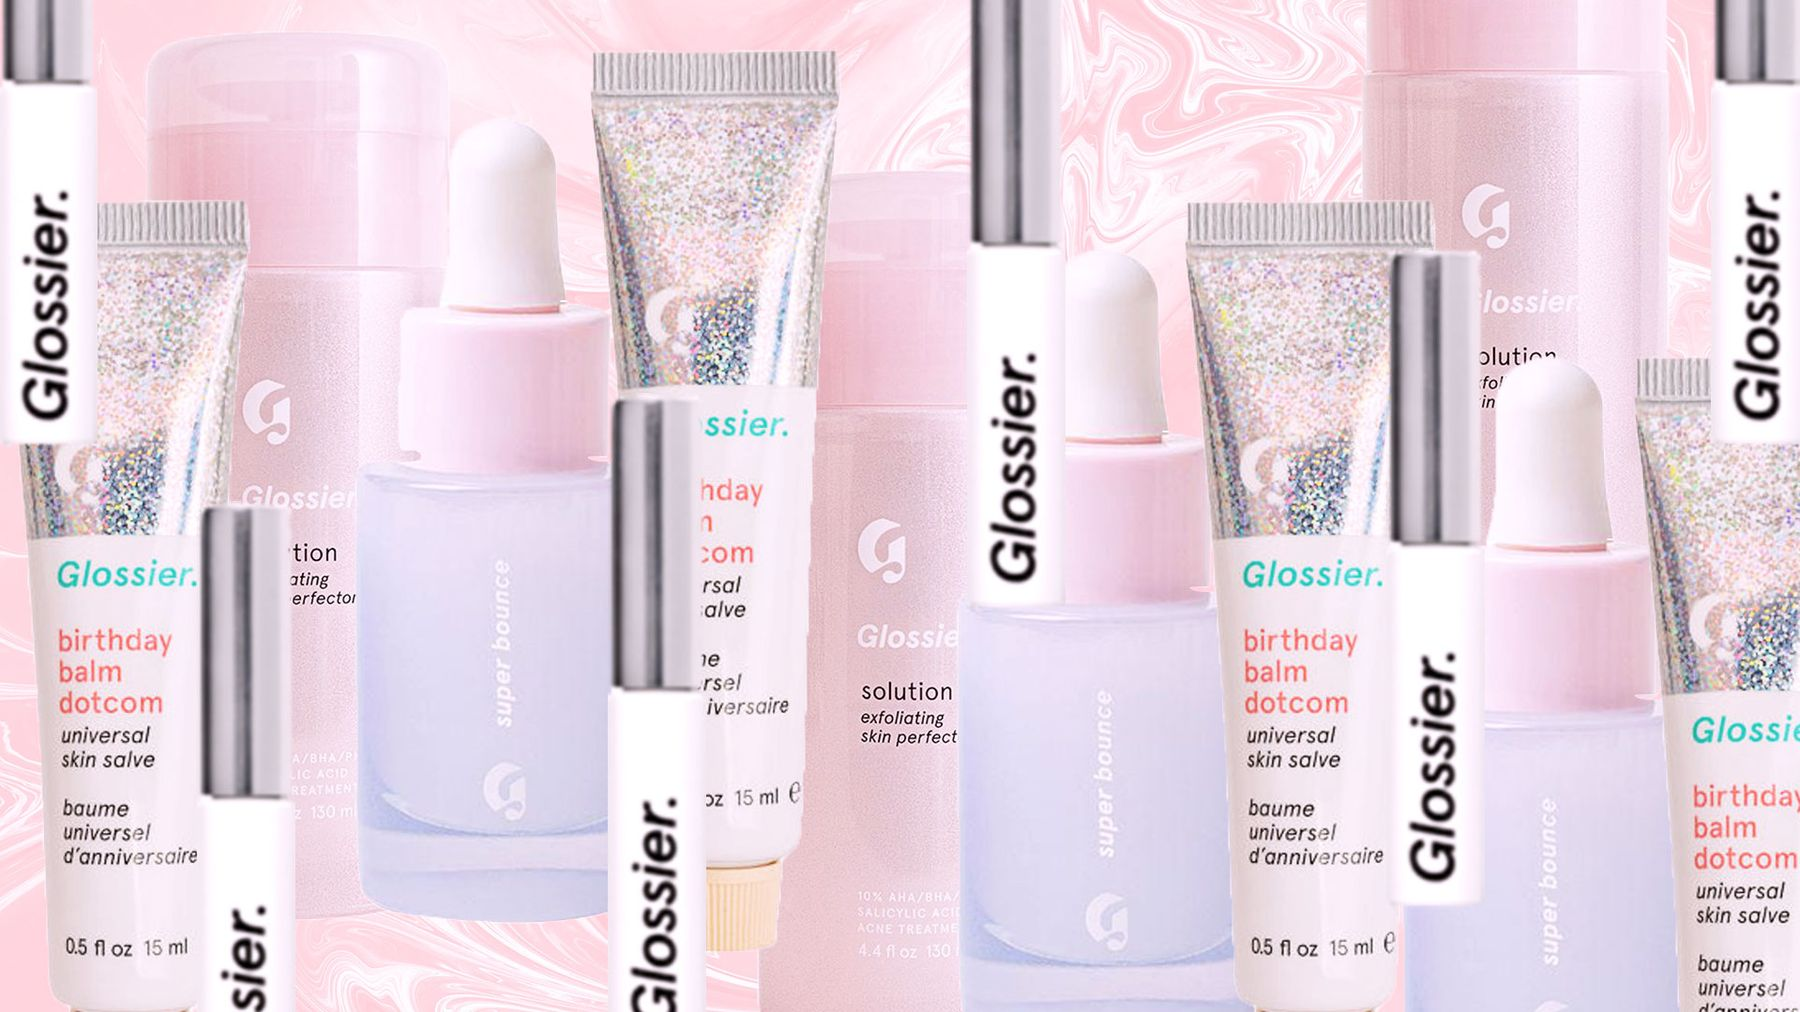 This Ex-Glossier Rep Just Wrote the Ultimate Dupe Guide | Grazia